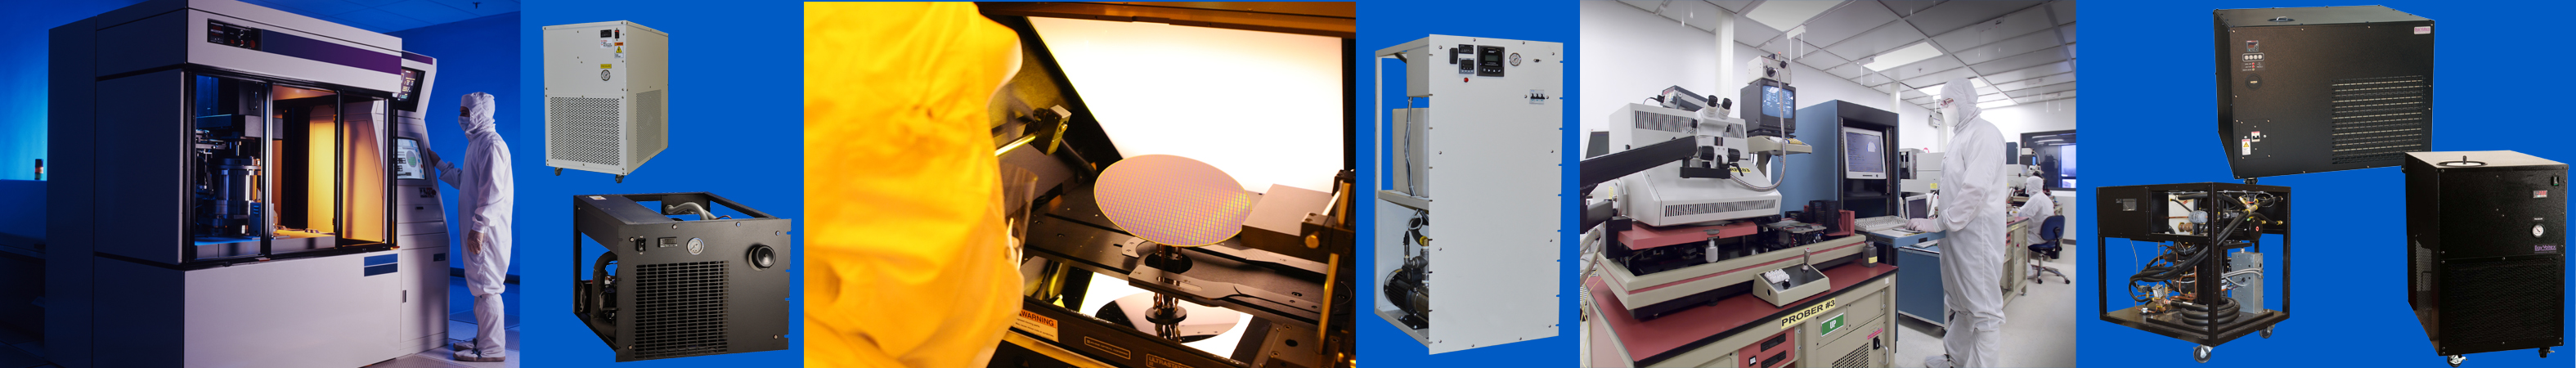 Chillers and Heat Exchangers from BV Thermal Systems used in the Semiconductor Industry